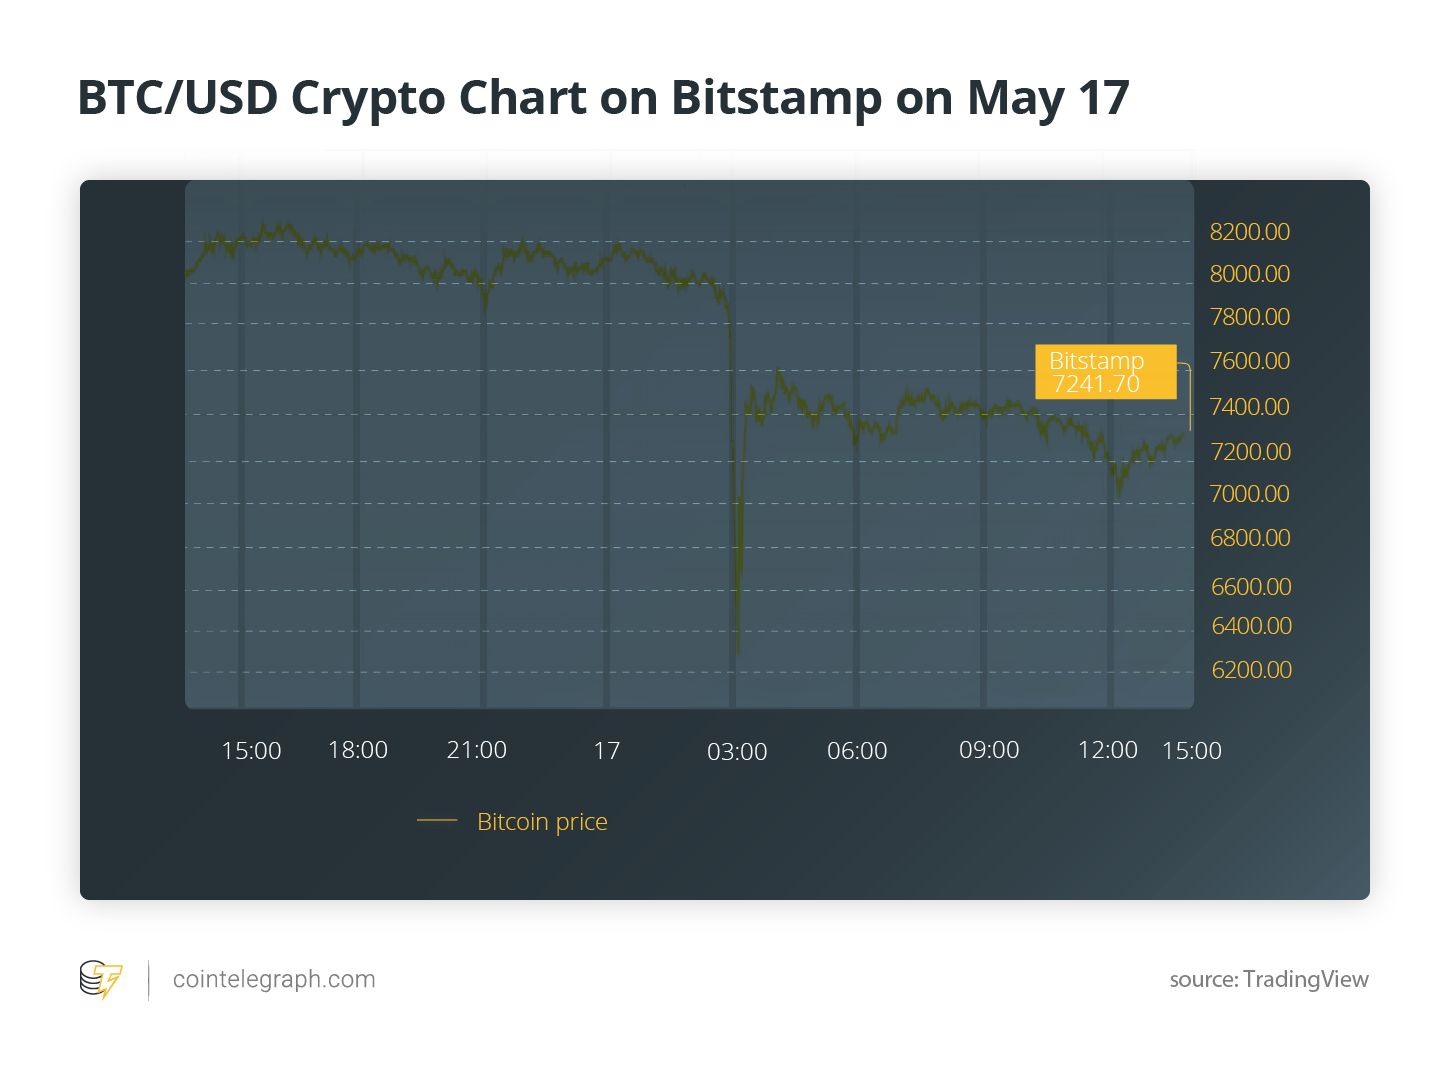 c18b3697f218b3a54a98a843c3a056e4 - Will Bitcoin's Volatility This Month Hinder the Future of an ETF?